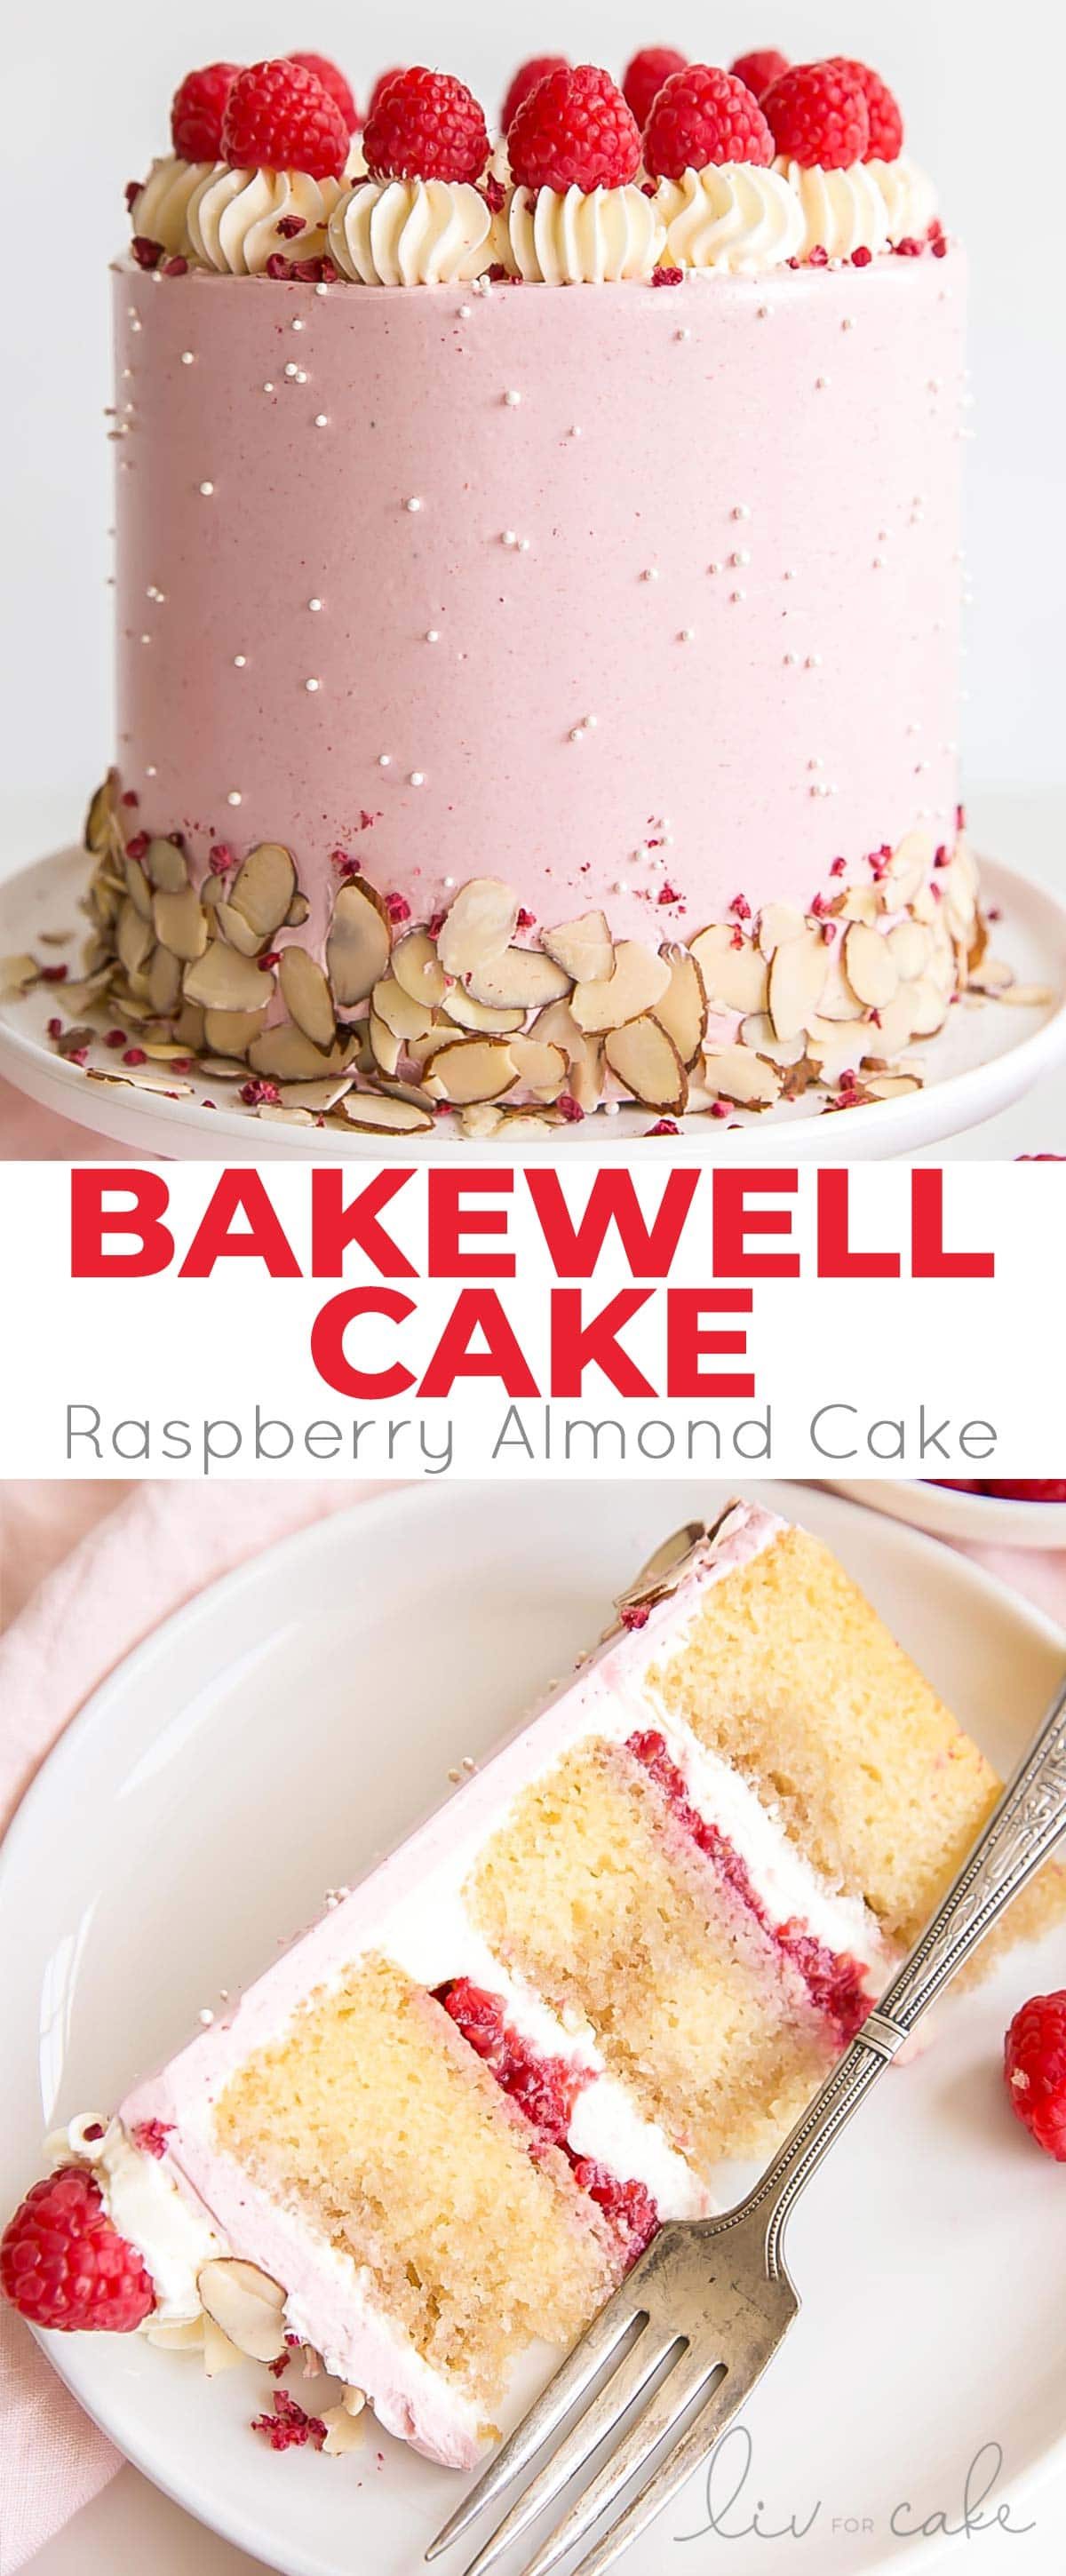 Bakewell cake collage